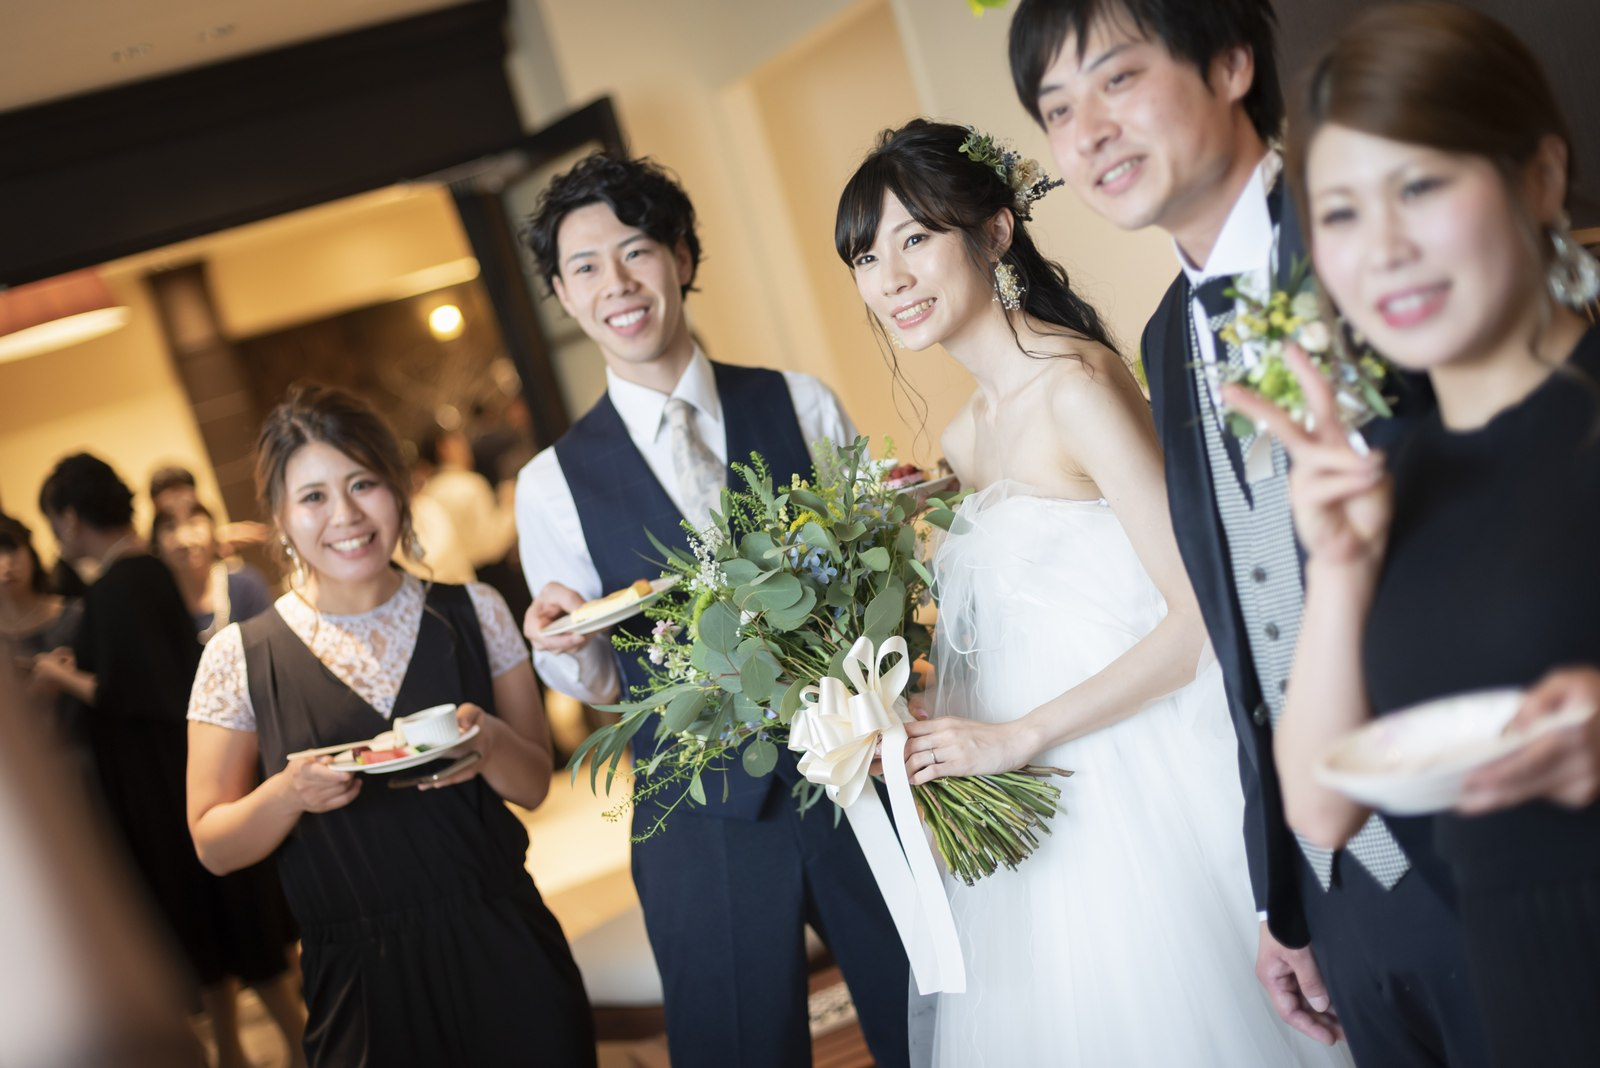 高松市の結婚式場アイルバレクラブ デザートブッフェ